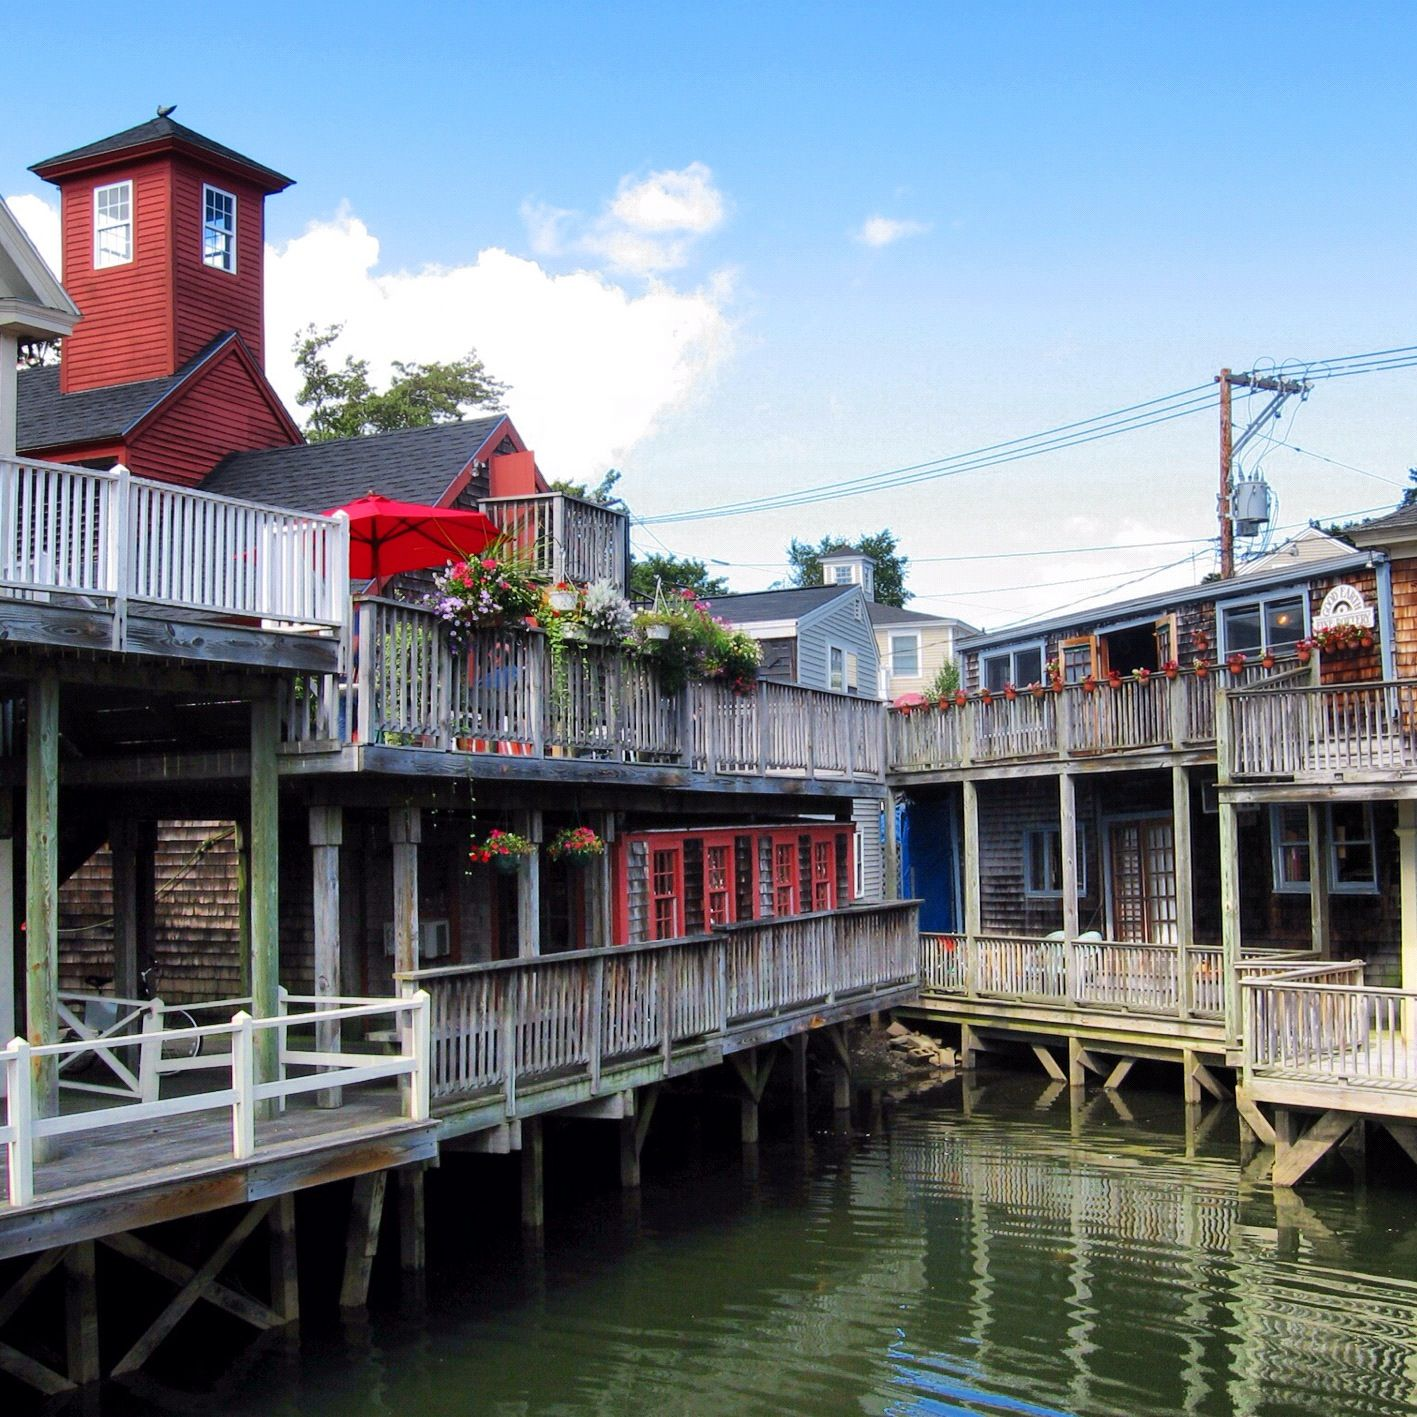 Apartments In Maine New Hampshire: Kennebunkport Maine